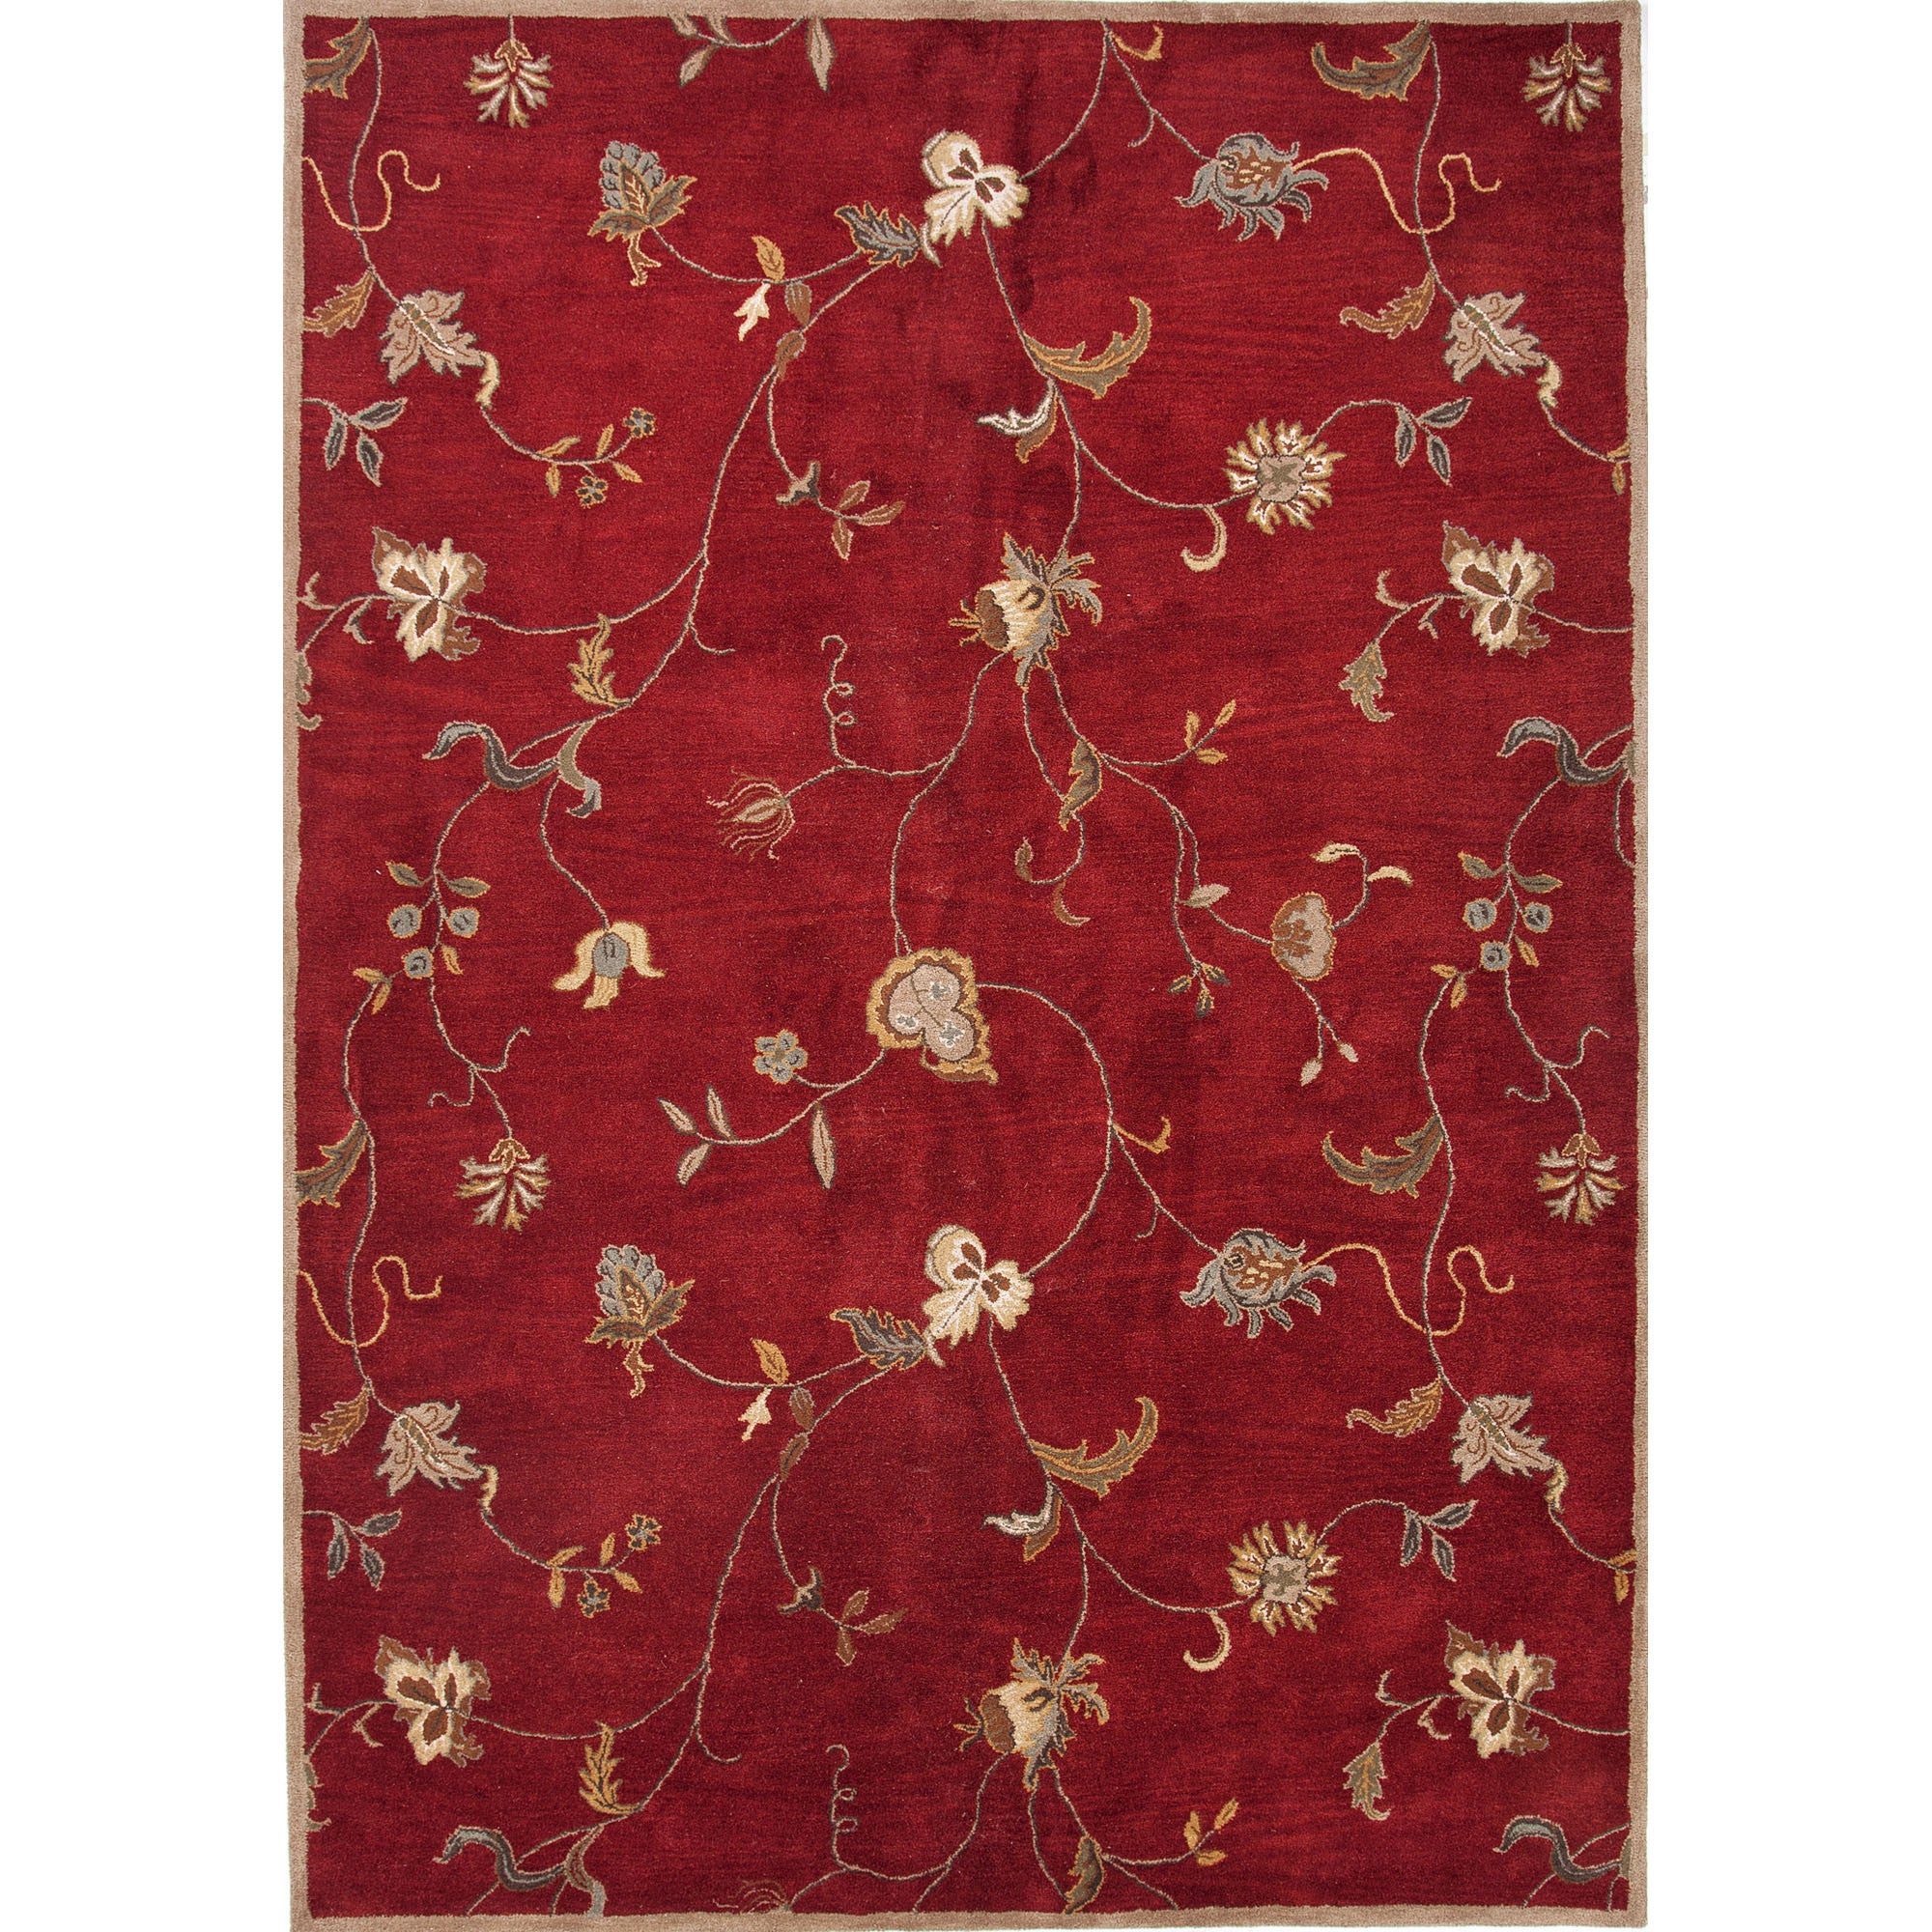 Jaipur rugs transitional floral pattern red ivory wool for Red floral area rug